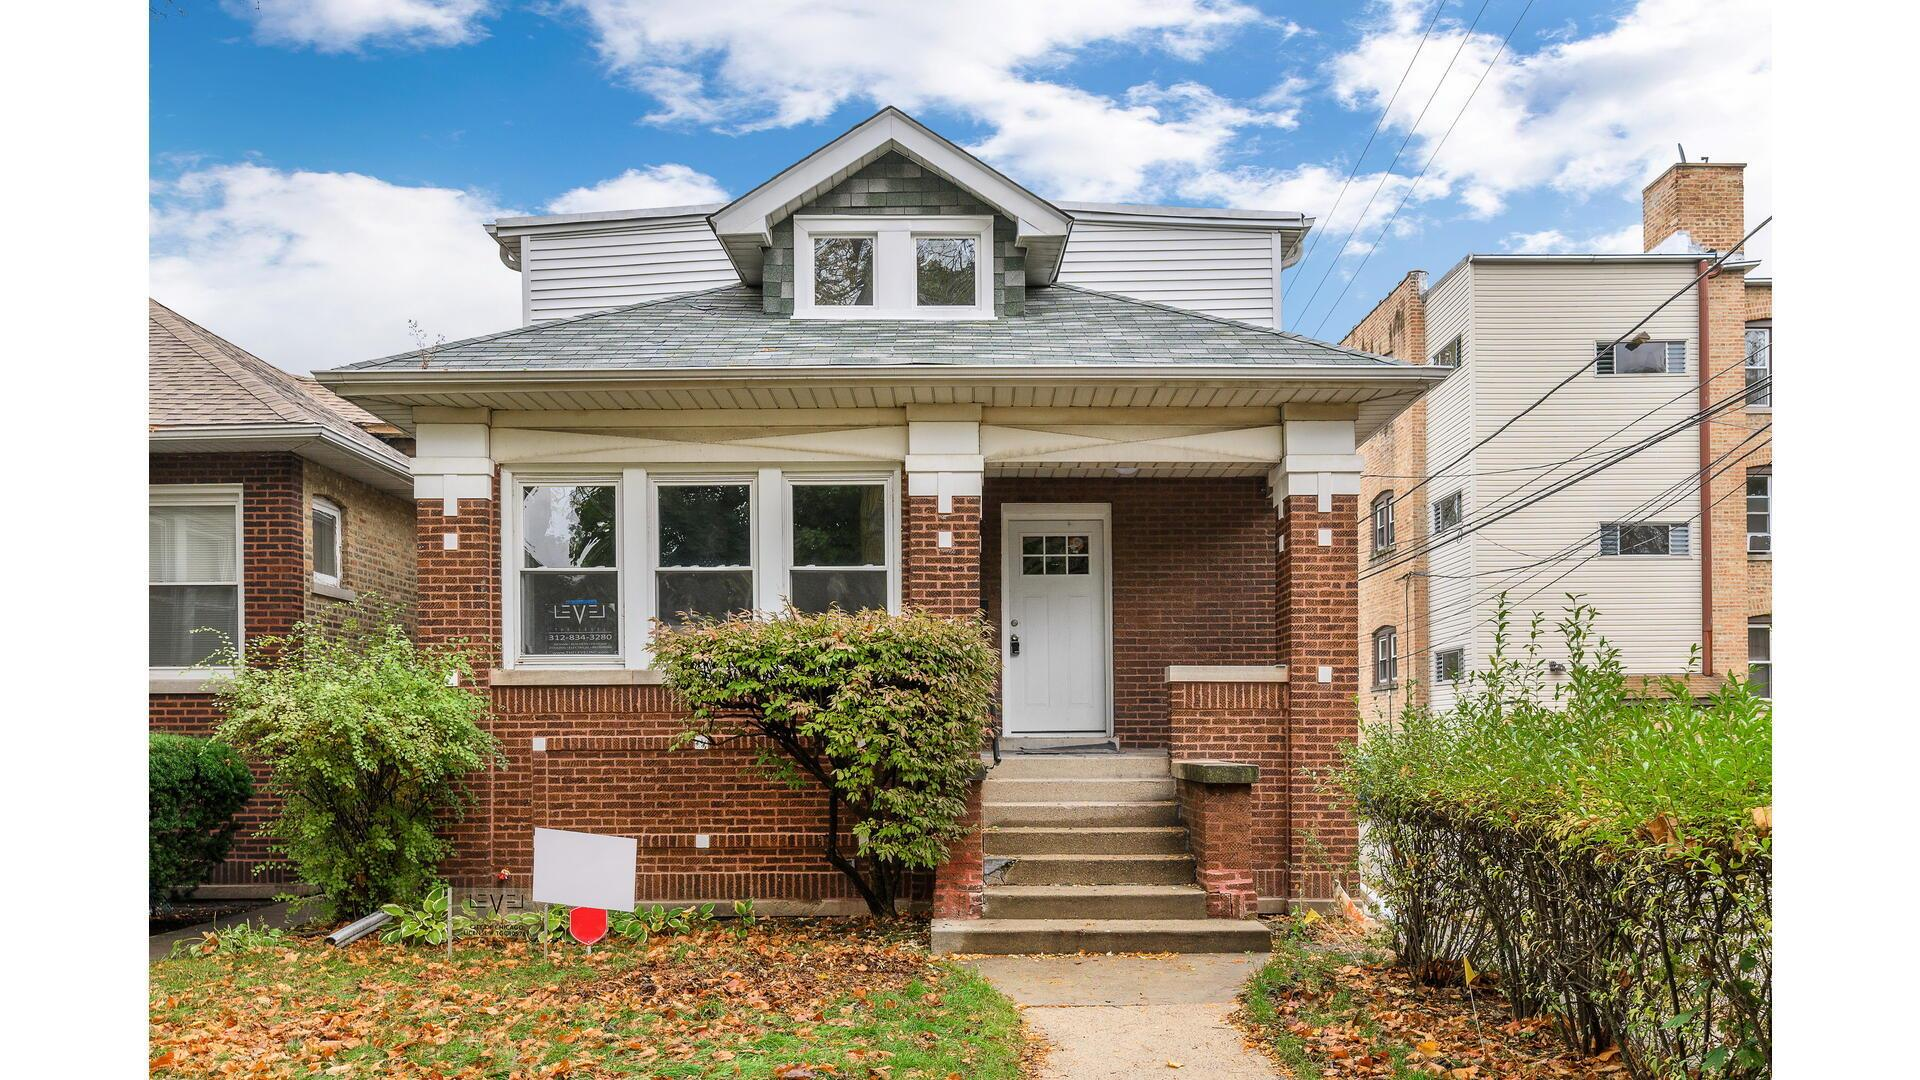 4815 N LOWELL Avenue, Chicago, IL 60630 - #: 10943493